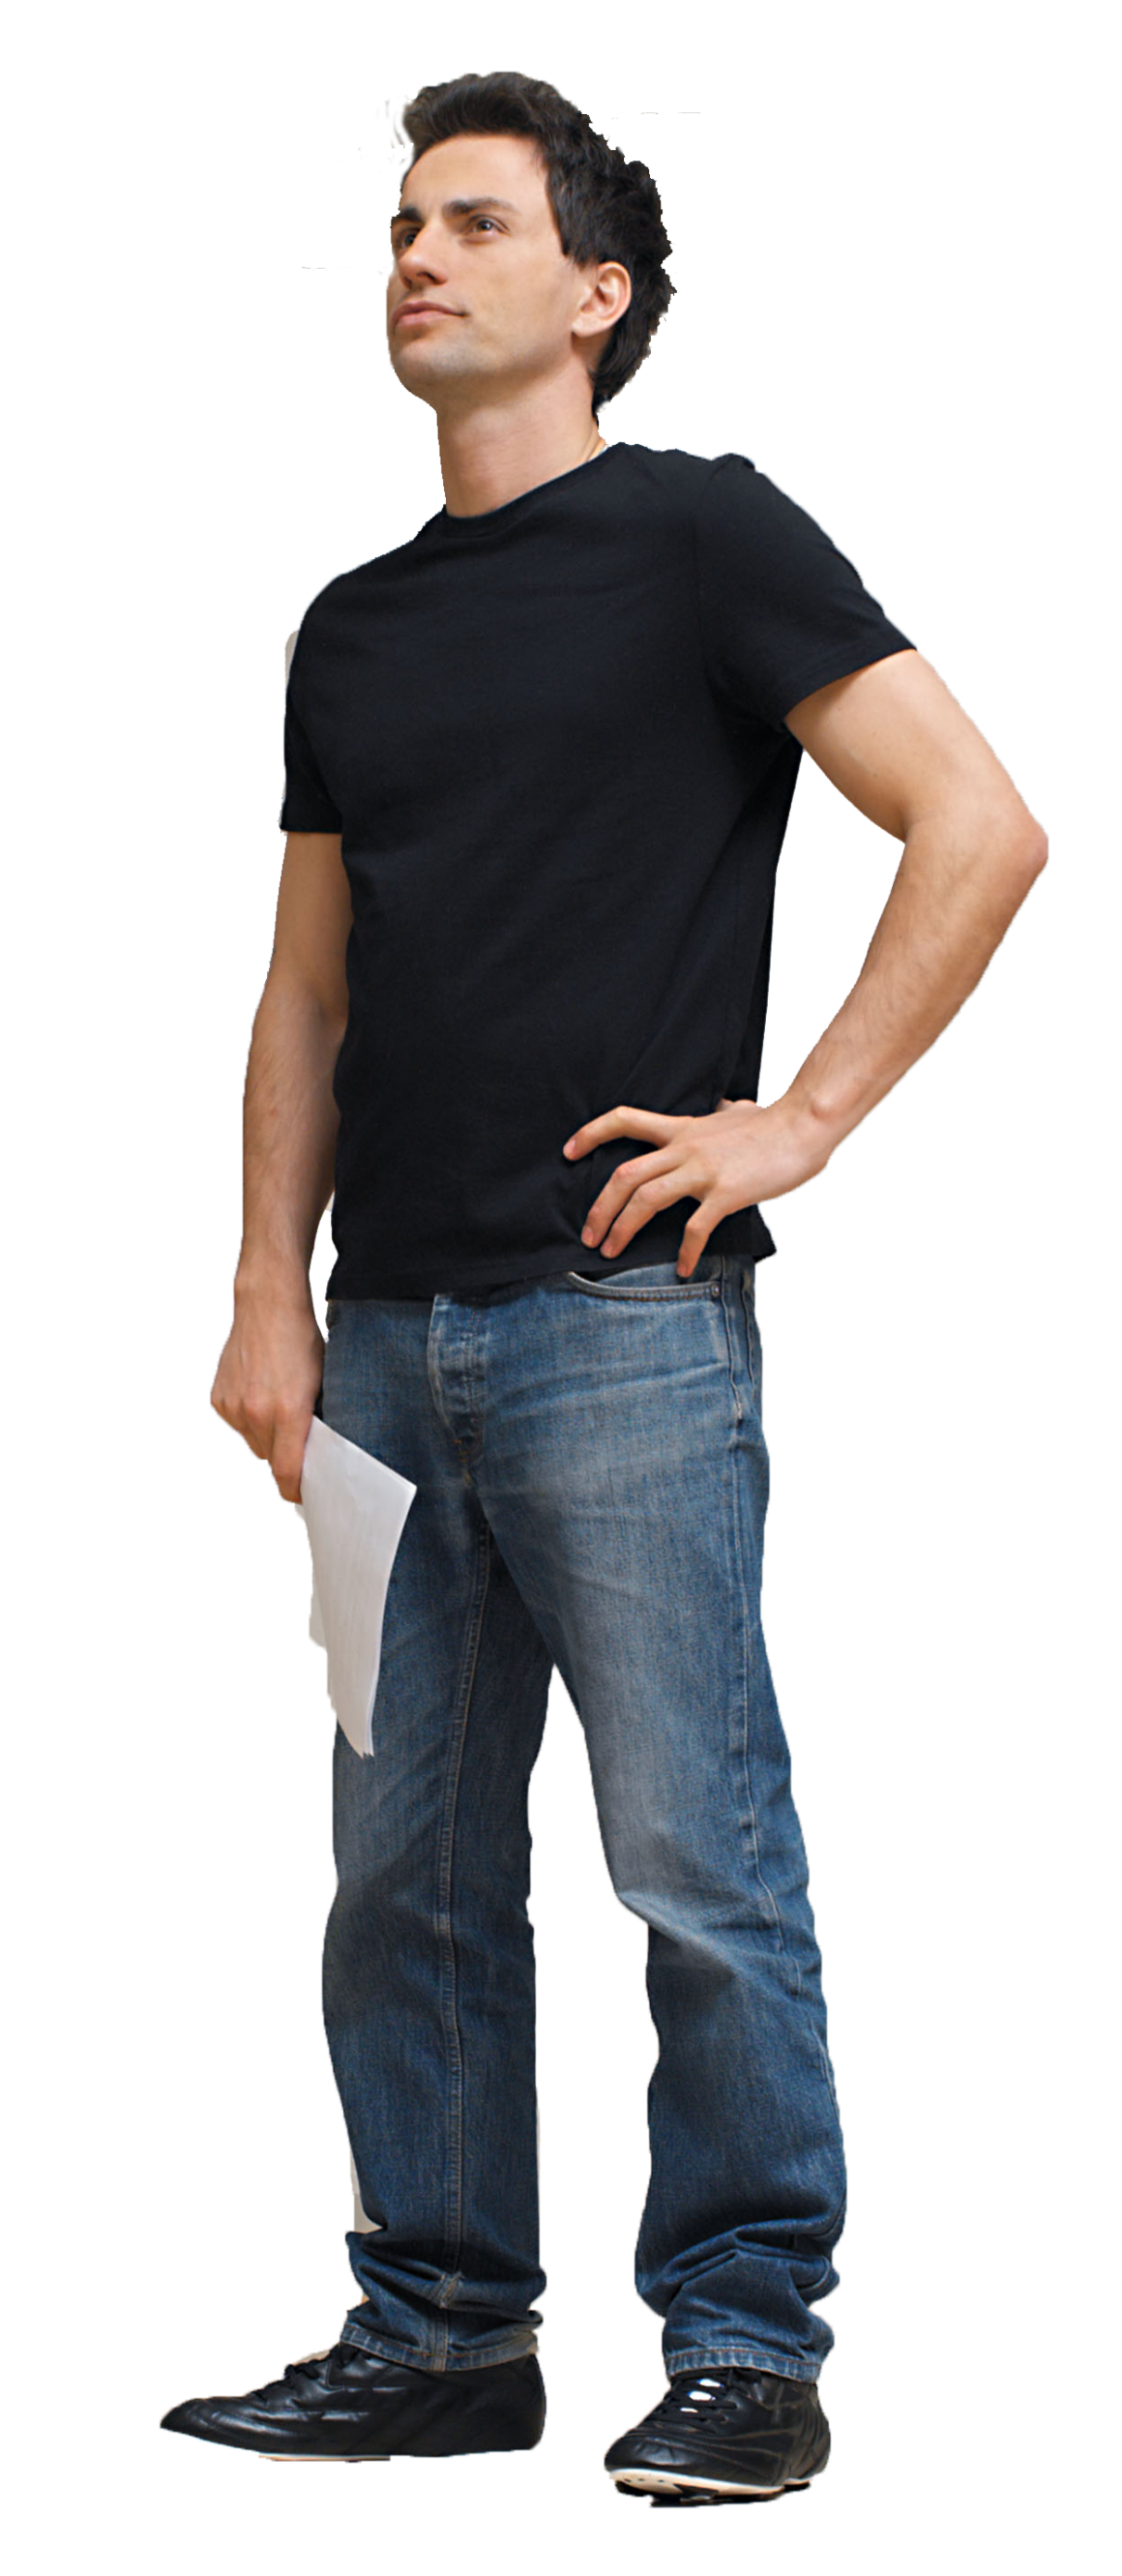 Download Png Image Man Png Image People Png Summer School Outfits People Icon All png & cliparts images on nicepng are best quality. download png image man png image